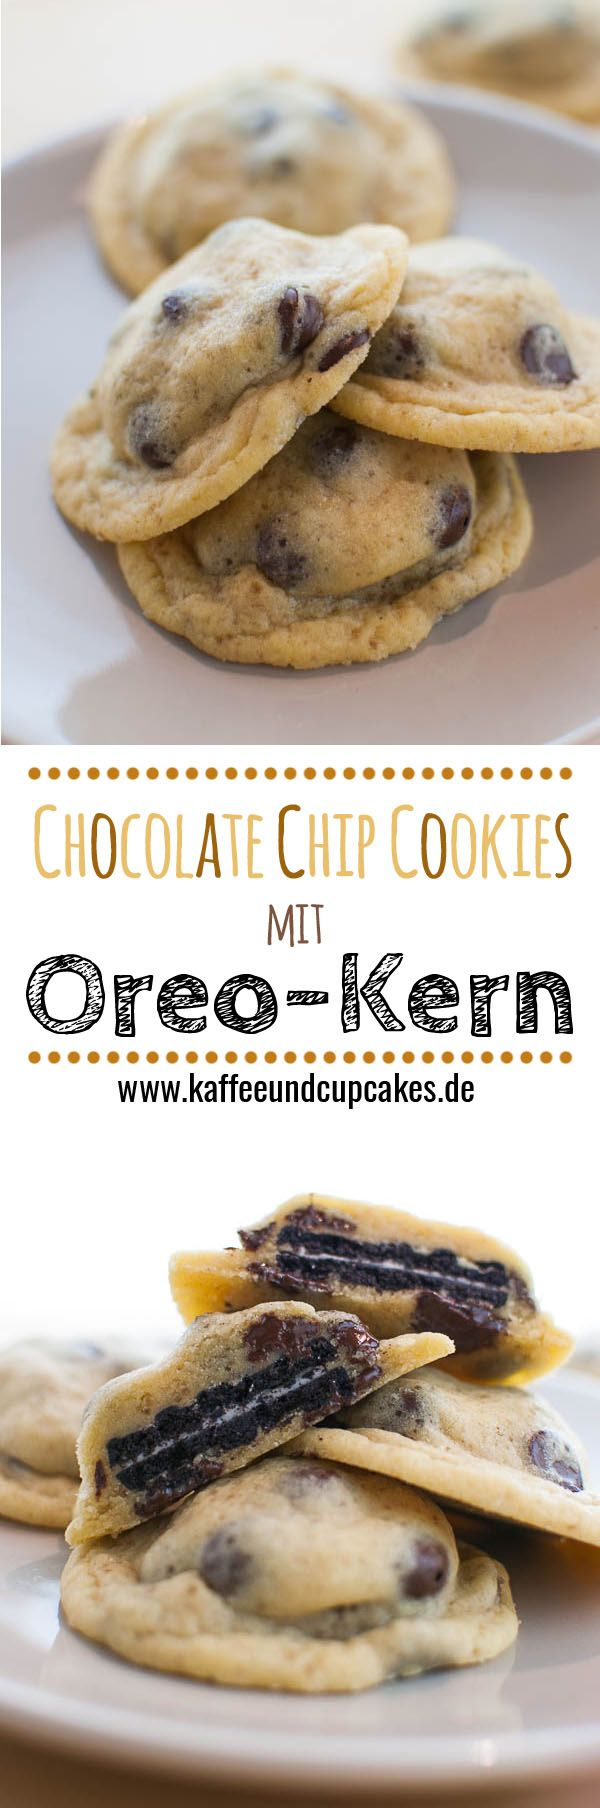 Chocolate Chip Cookies mit Oreo-Kern.